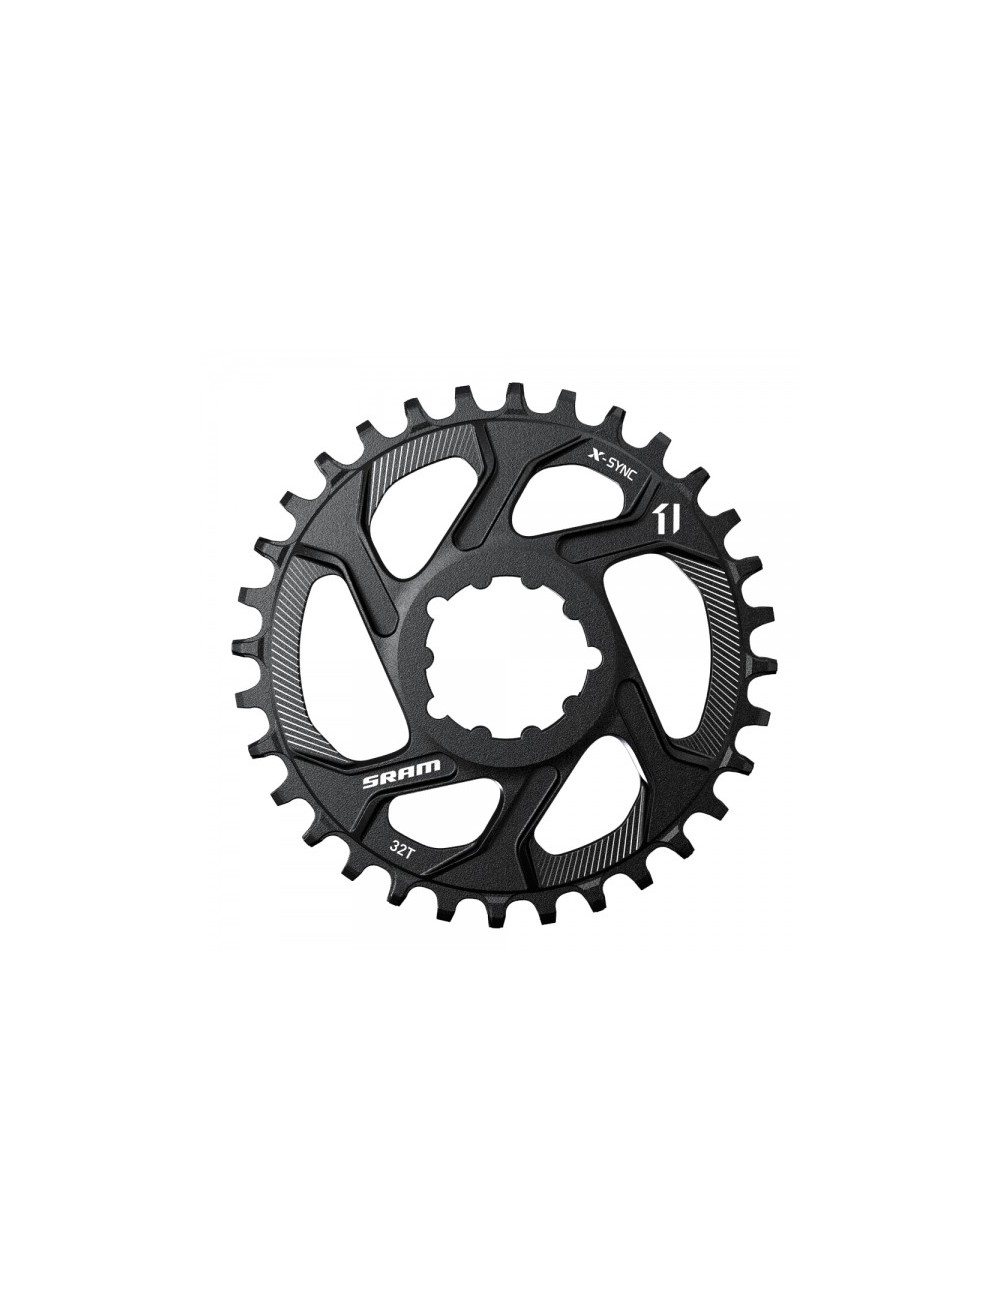 RODA PEDALEIRA SRAM X-SYNC 32D DIRECT MOUNT 6 OFFSET 11V